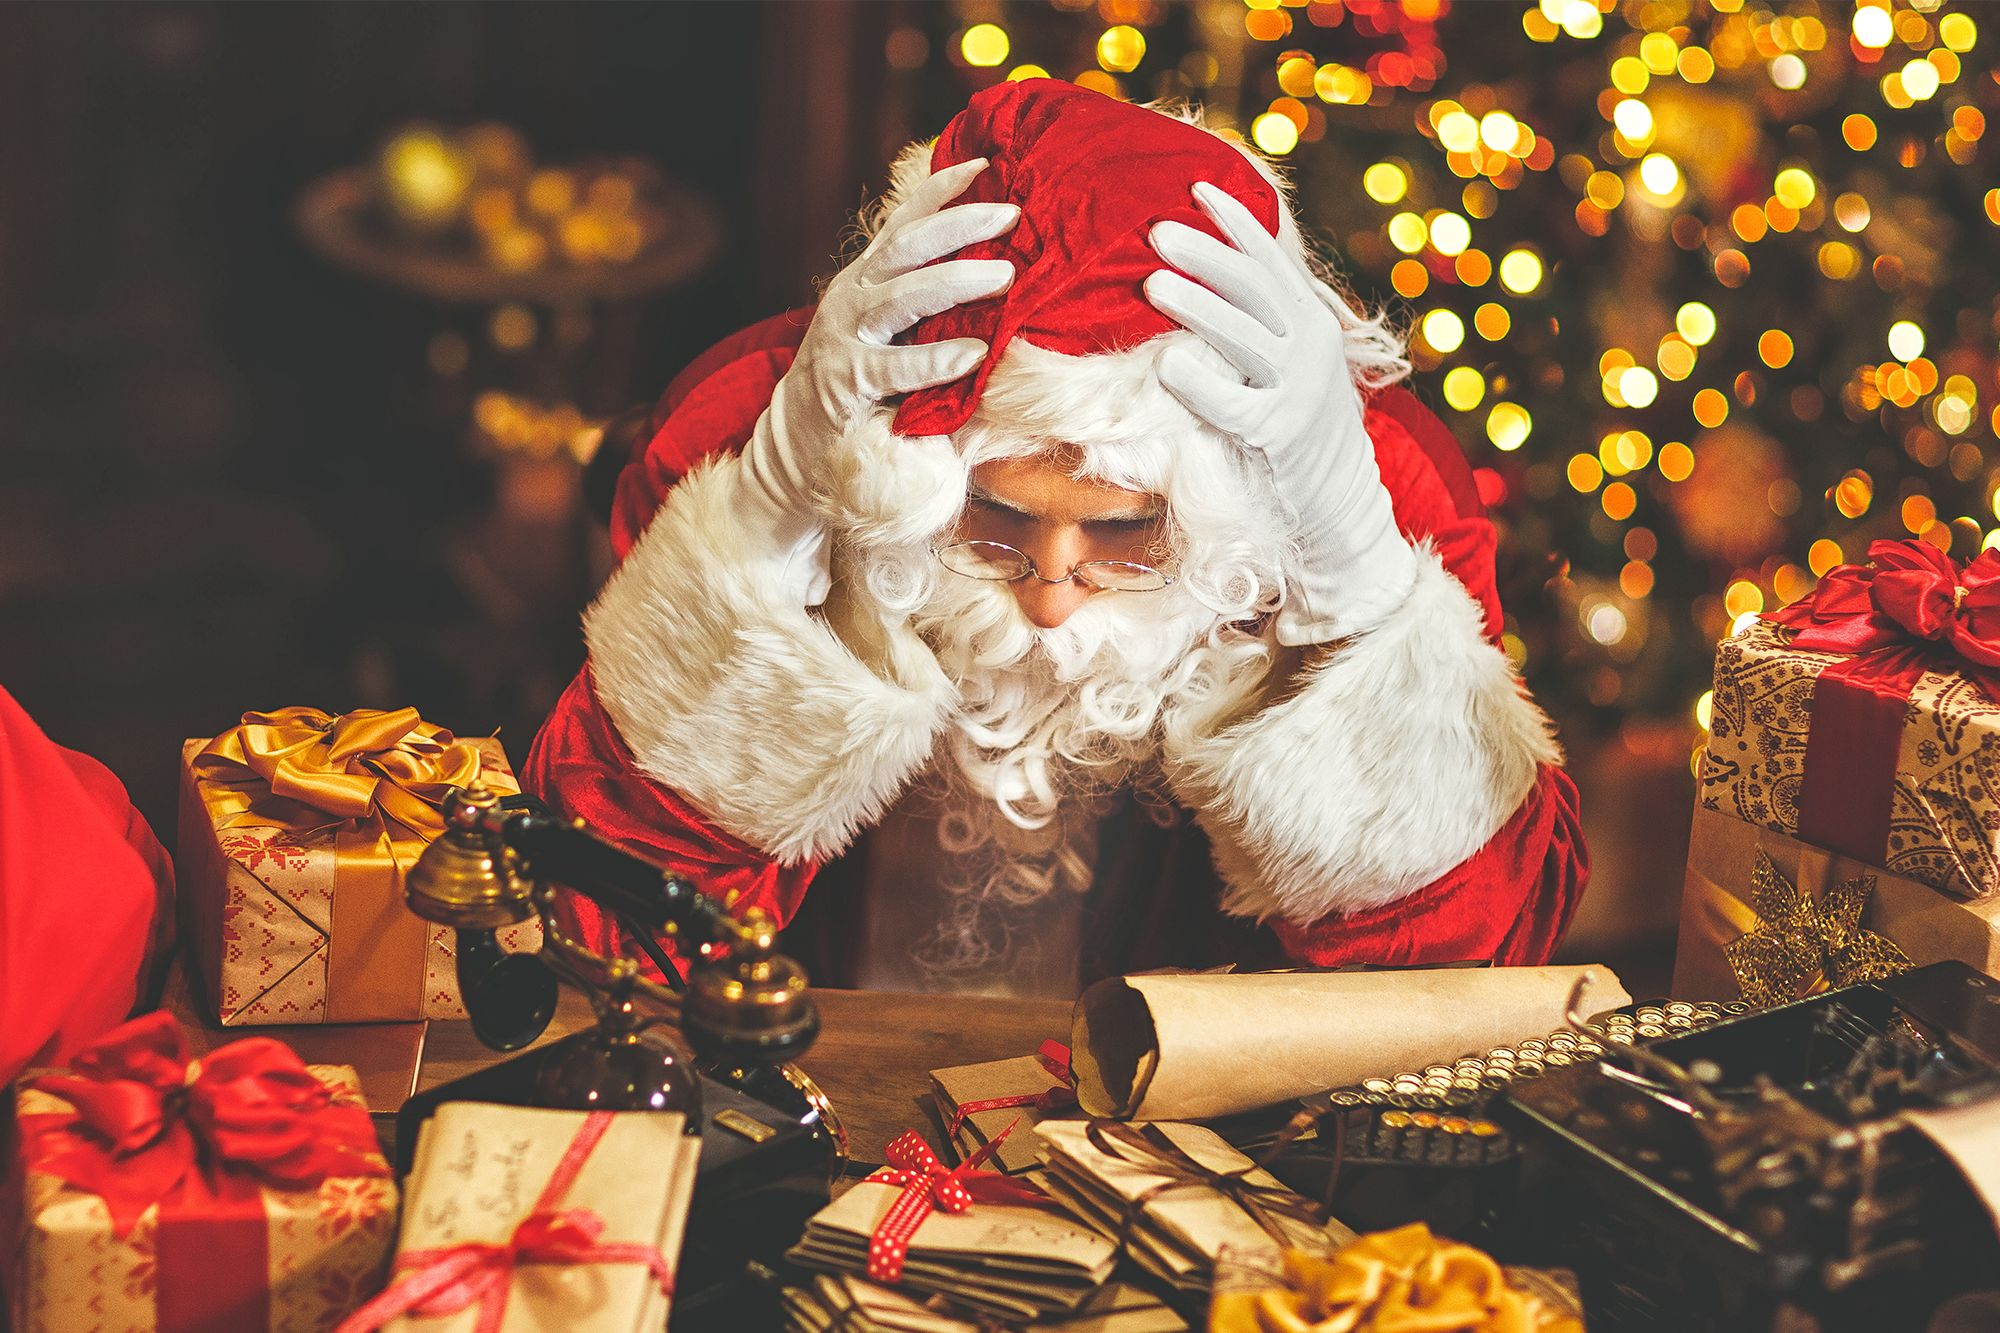 LETTER: Holiday stress can mean gambling becomes coping mechanism